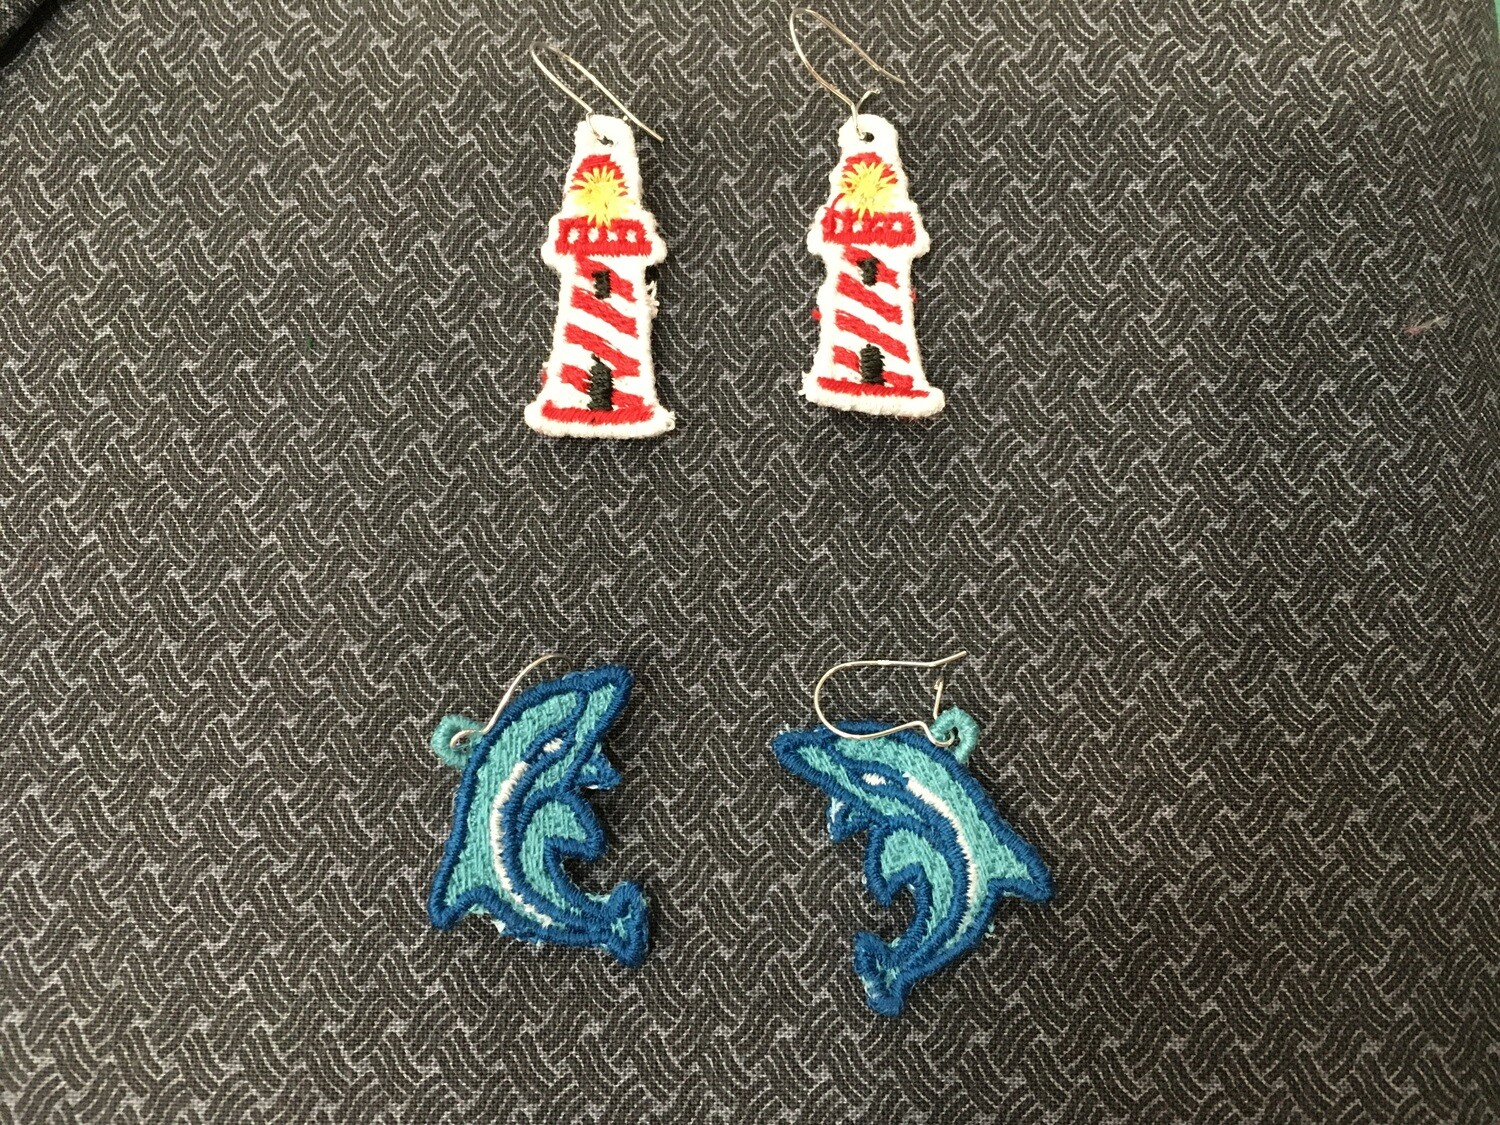 Earrings embroidered